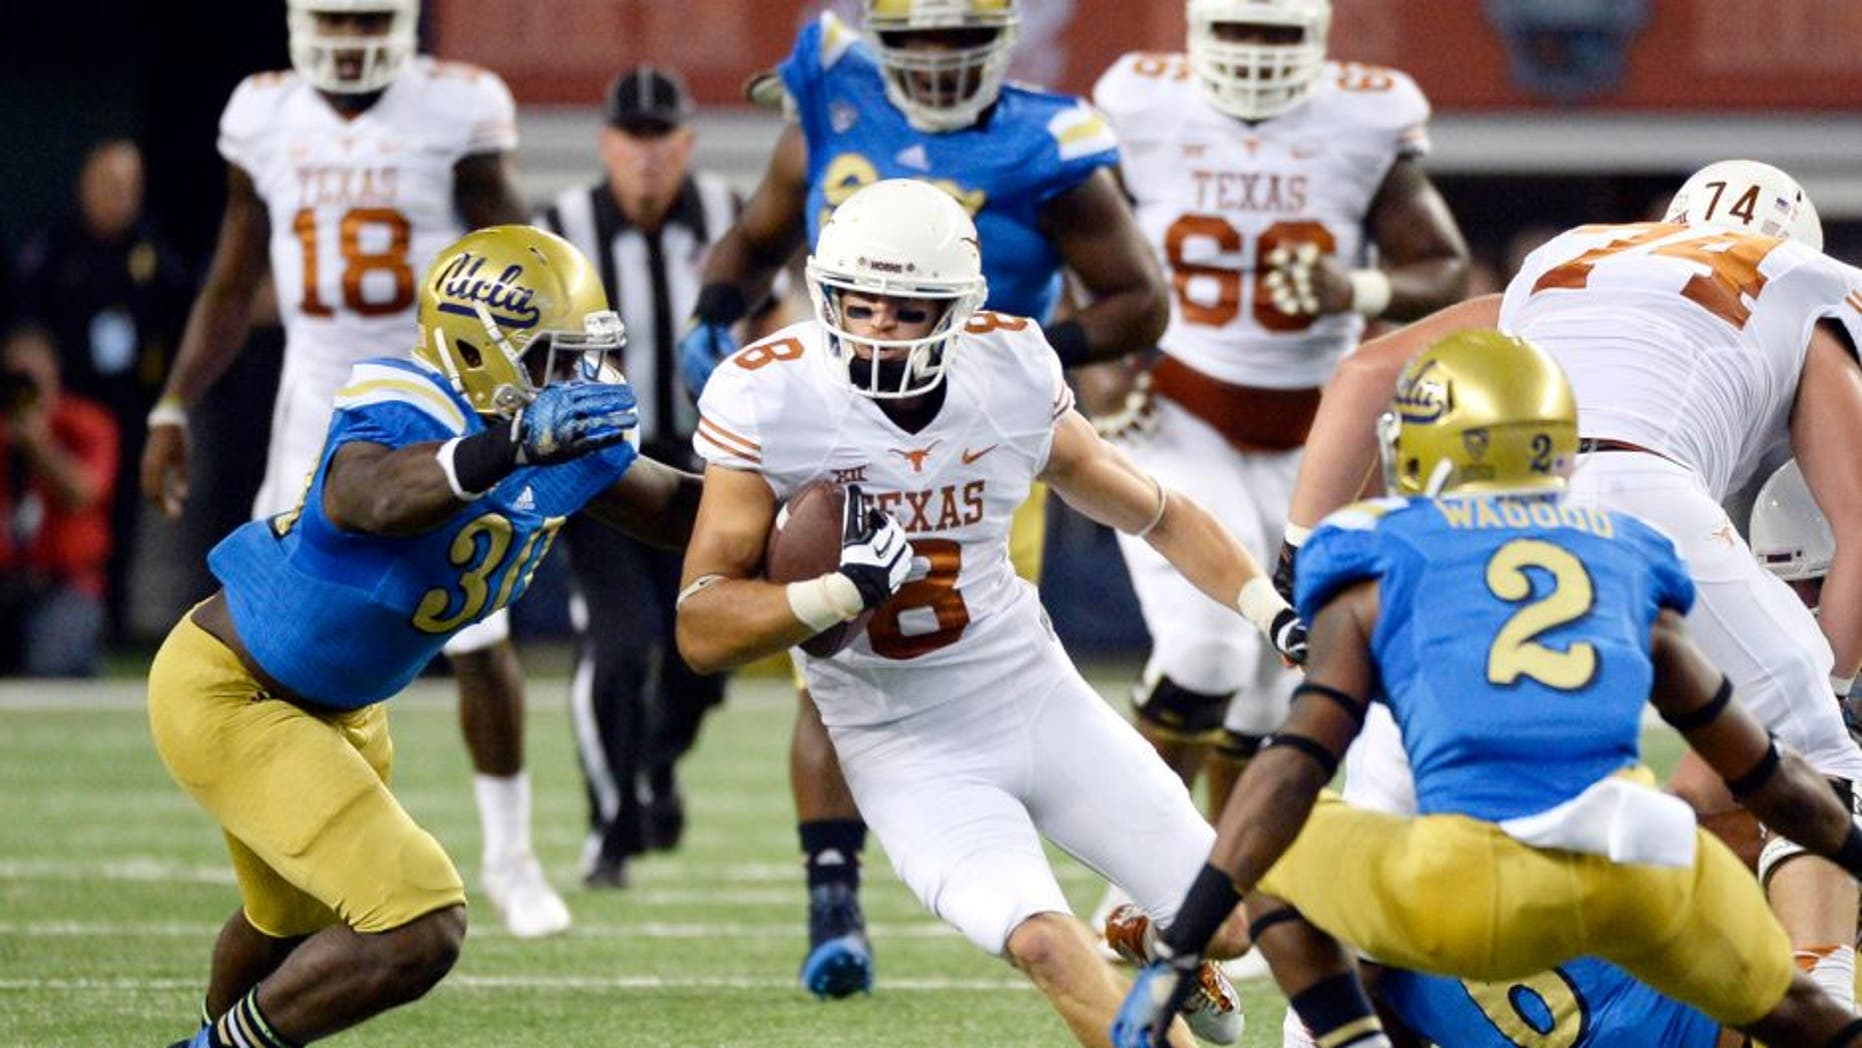 Sep 13, 2014; Arlington, TX, USA; Texas Longhorns wide receiver Jaxon Shipley (8) runs against UCLA Bruins linebacker Myles Jack (30) and defensive back Jaleel Wadood (2)during the first quarter at AT&T Stadium. Mandatory Credit: Richard Mackson-USA TODAY Sports